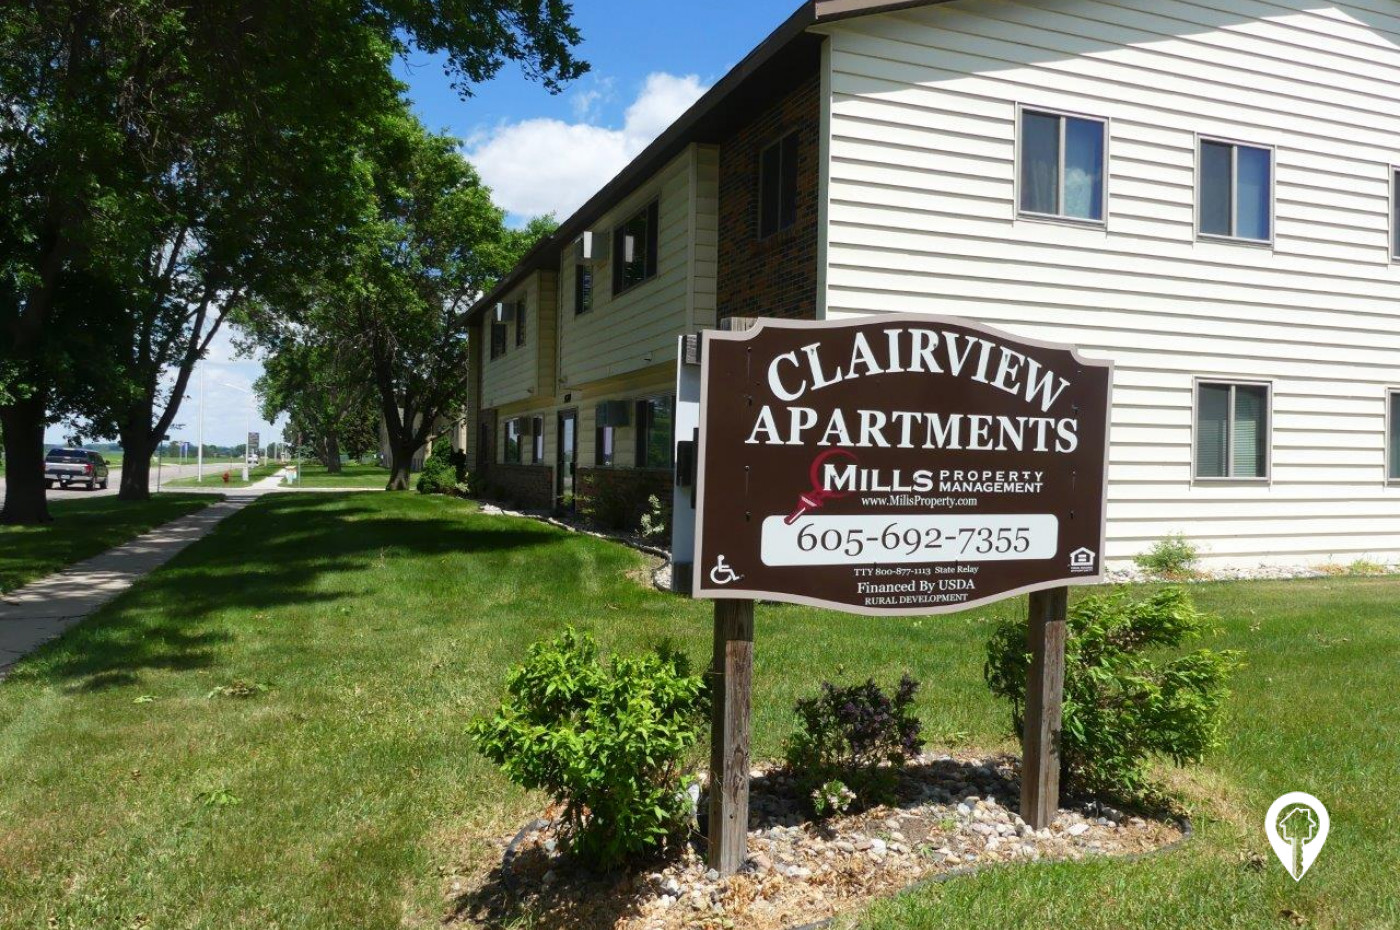 Clairview Apartments